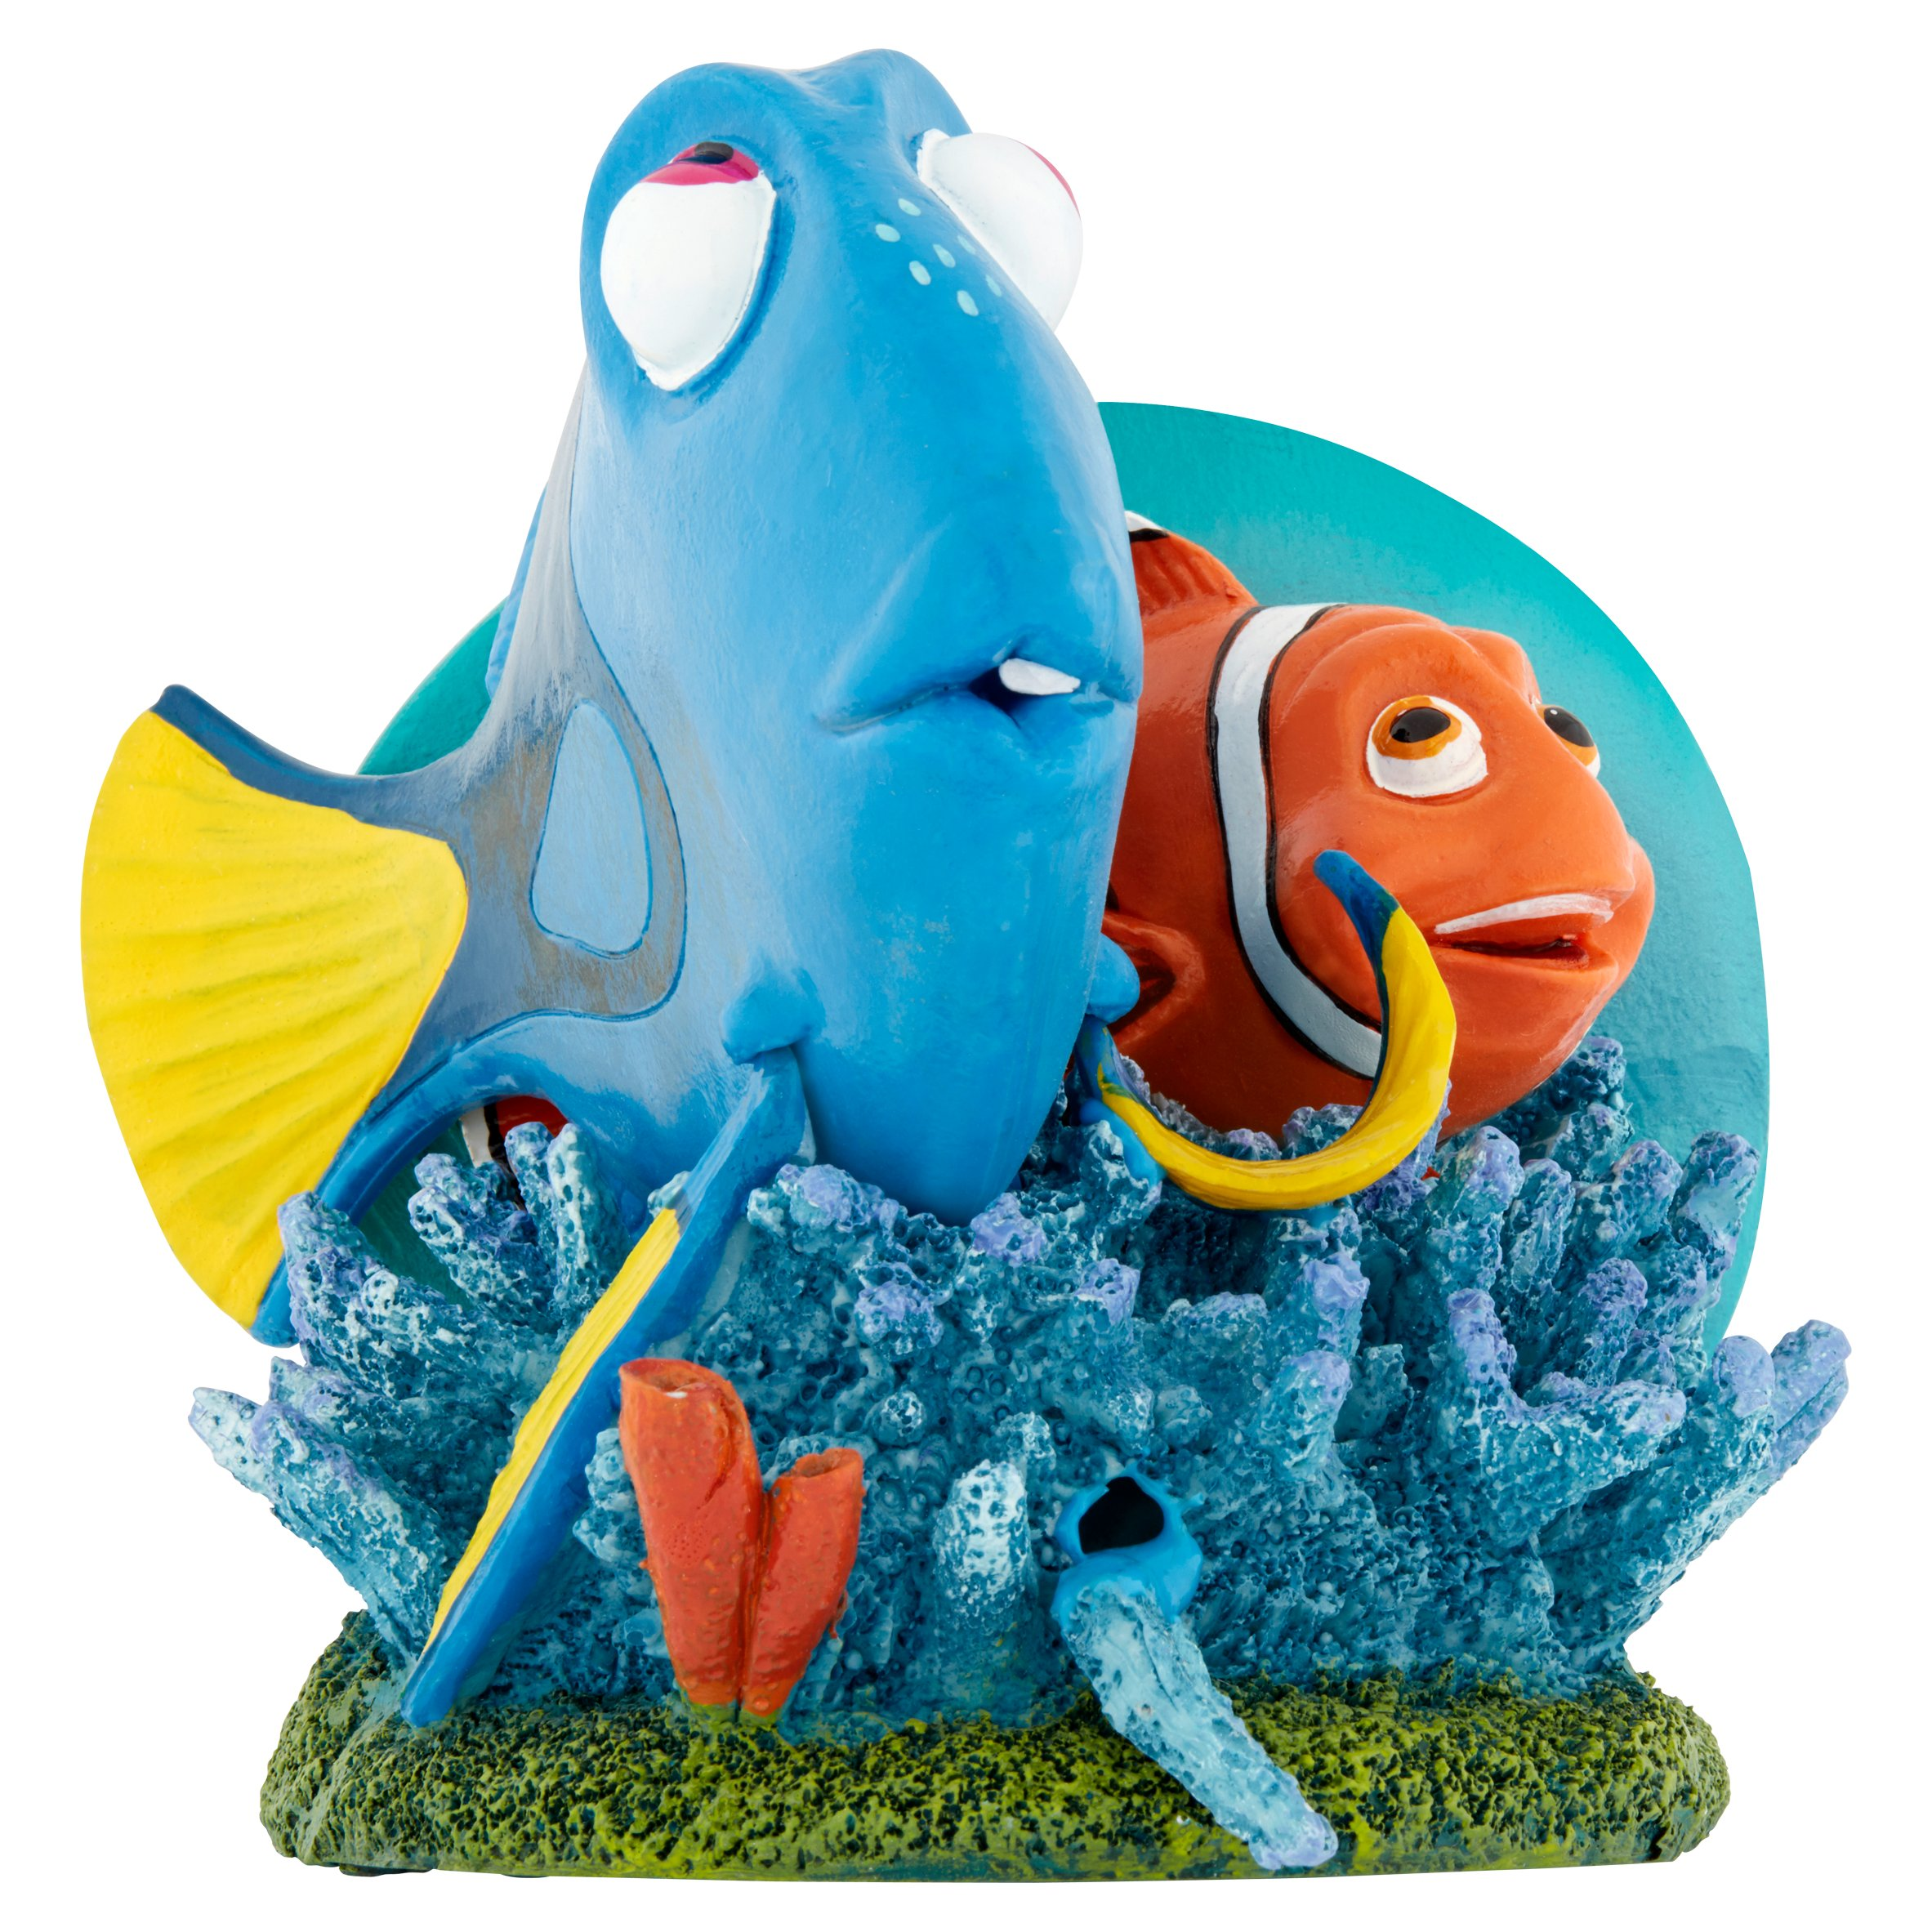 "Disney-Pixar Finding Nemo Dory and Marlin 6"" Aquarium Ornament by Penn-Plax, Inc."